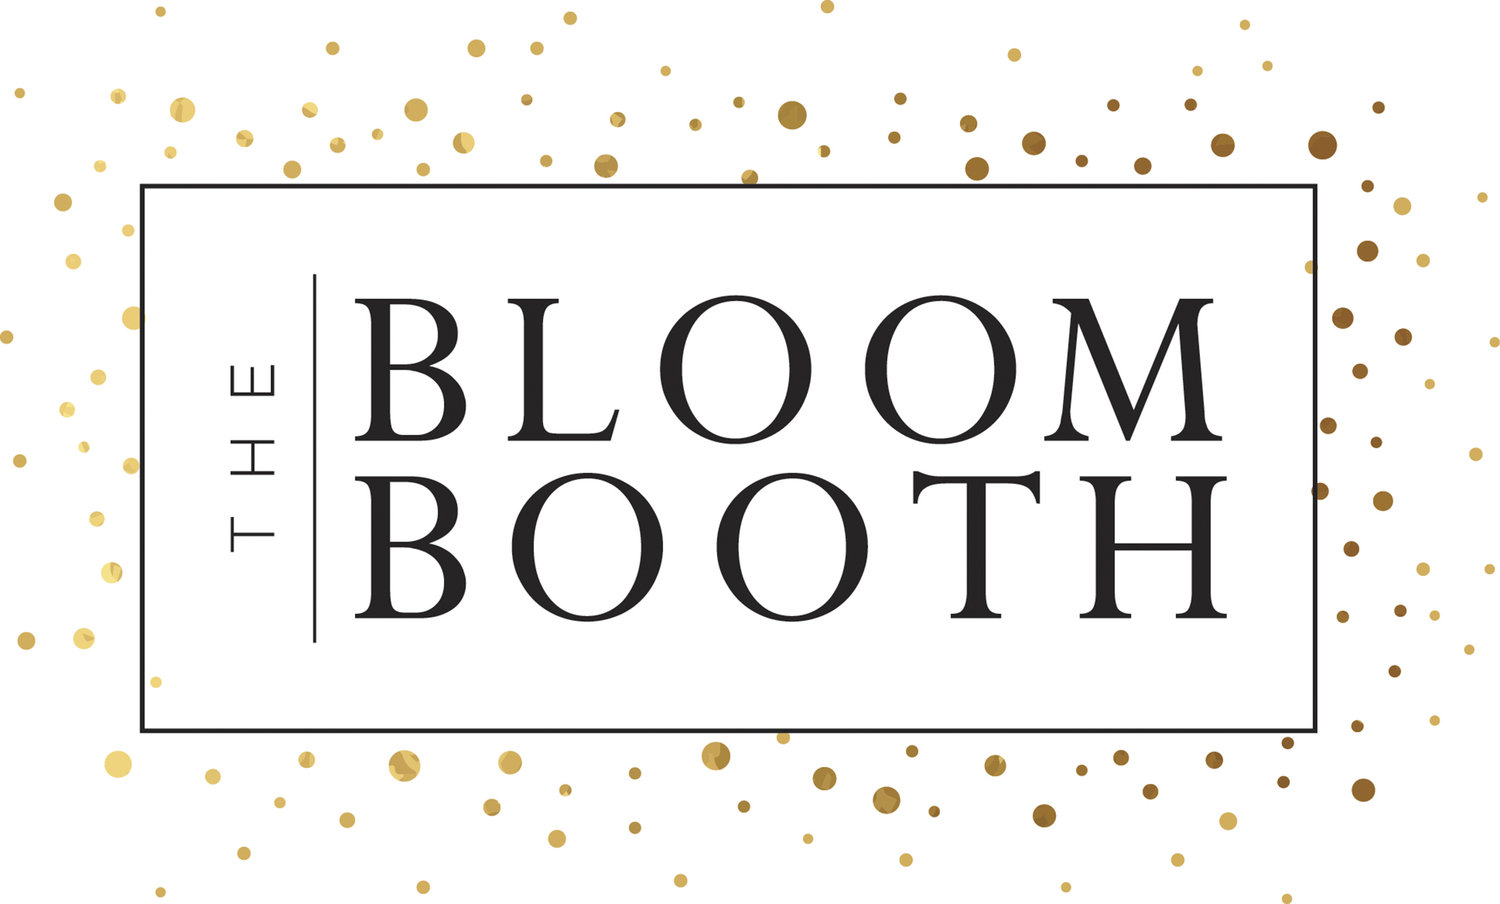 The Bloom Booth